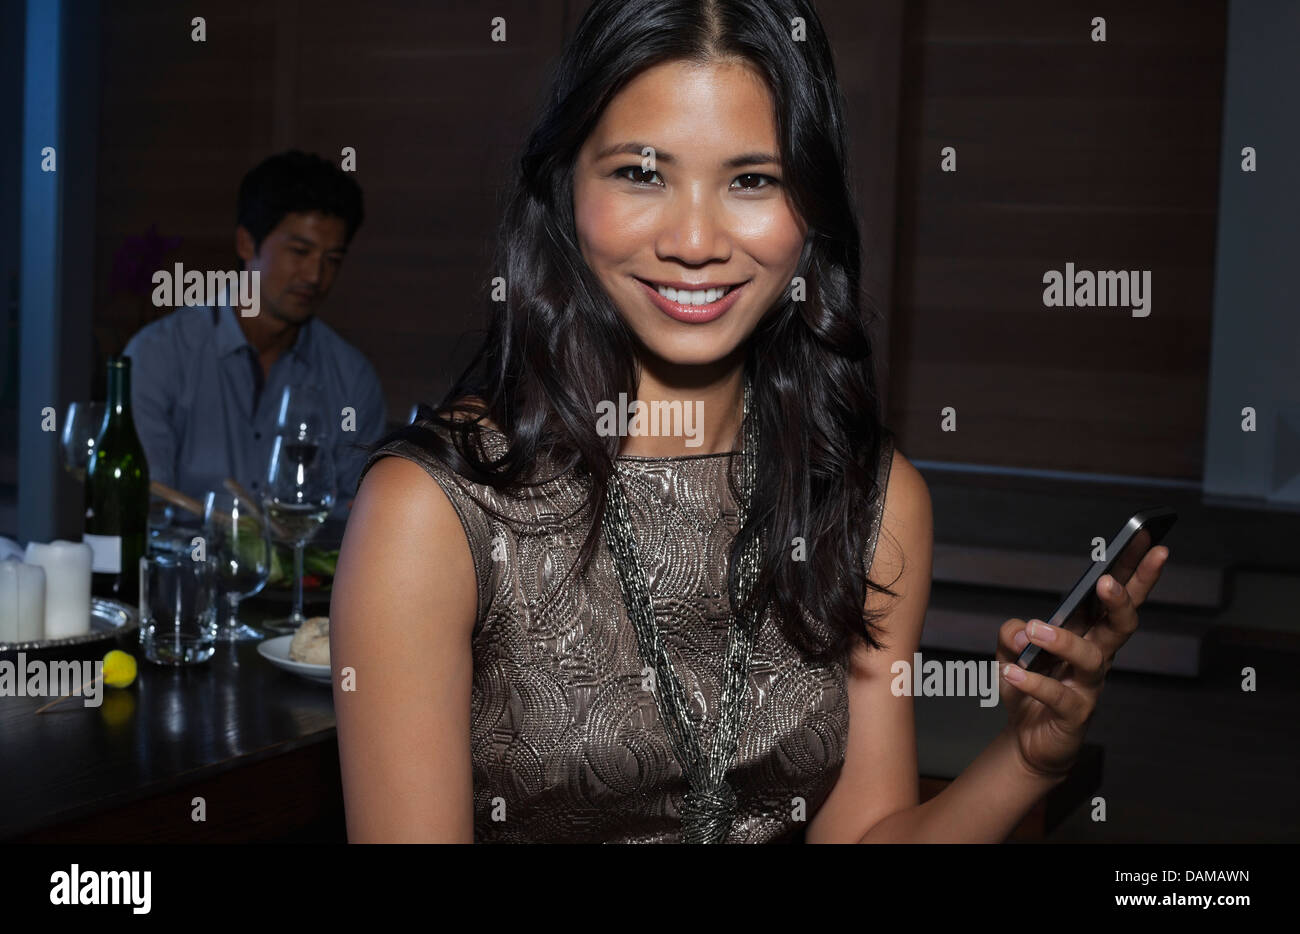 Woman using cell phone at party - Stock Image